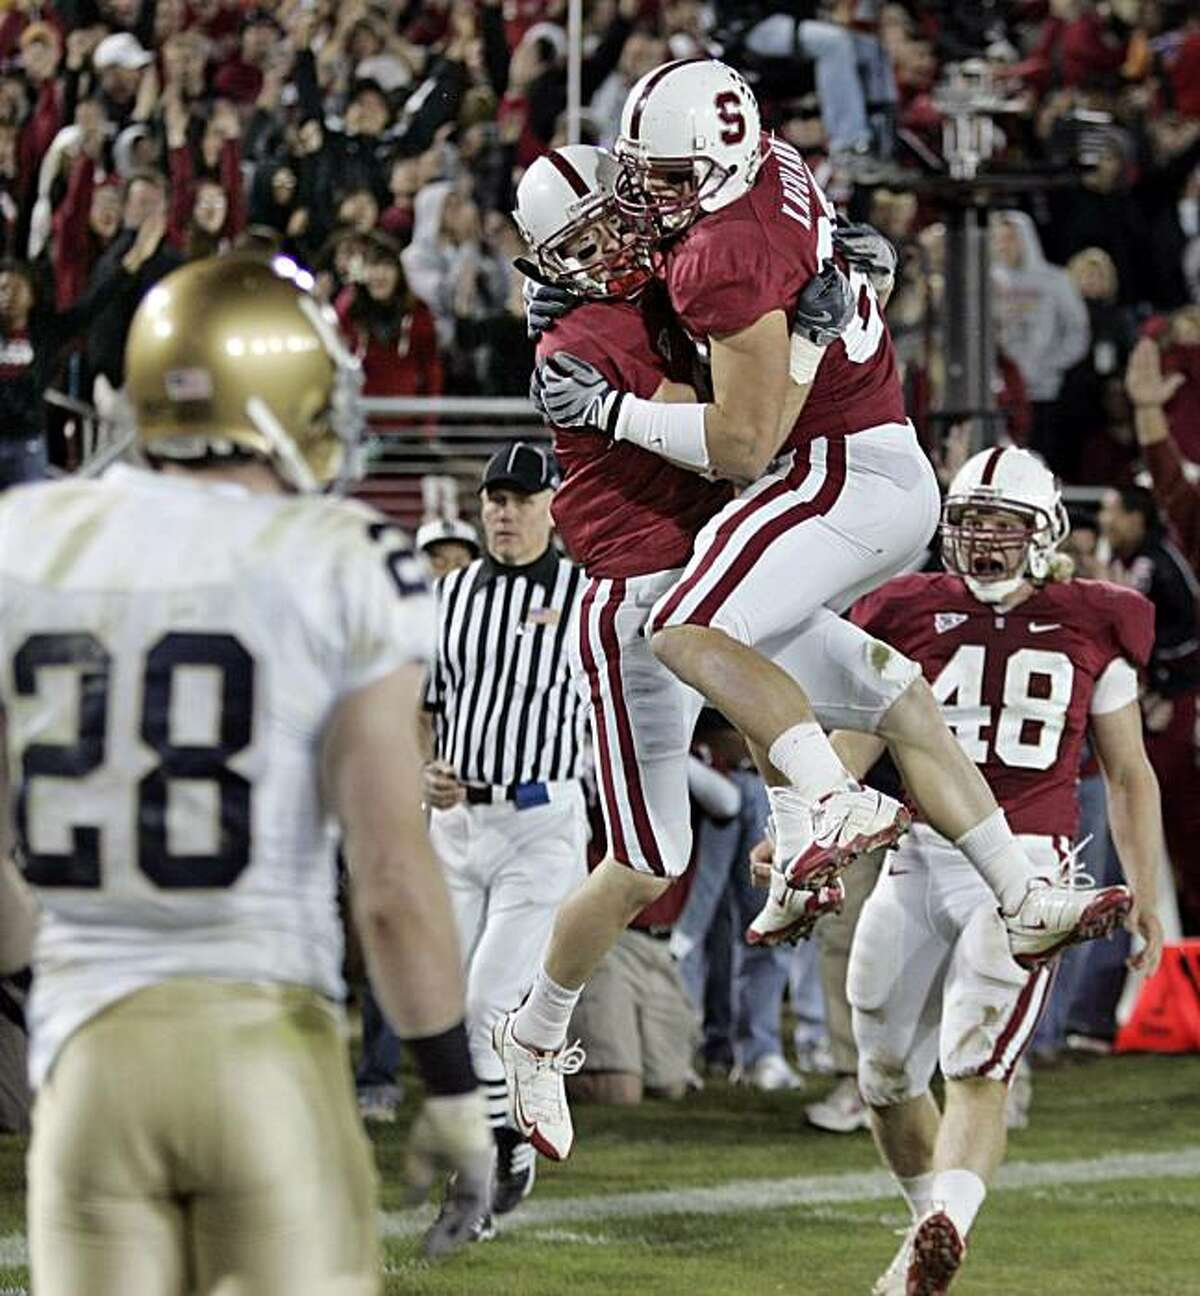 Stanford wide receiver Ryan Whalen, left, is congratulated by tight end Konrad Reuland, right, after scoring in front of Notre Dame safety Kyle McCarthy (28) in the fourth quarter of their NCAA college football game in Stanford, Calif., Saturday, Nov. 28, 2009. Stanford defeated Notre Dame 45-38. (AP Photo/Paul Sakuma)